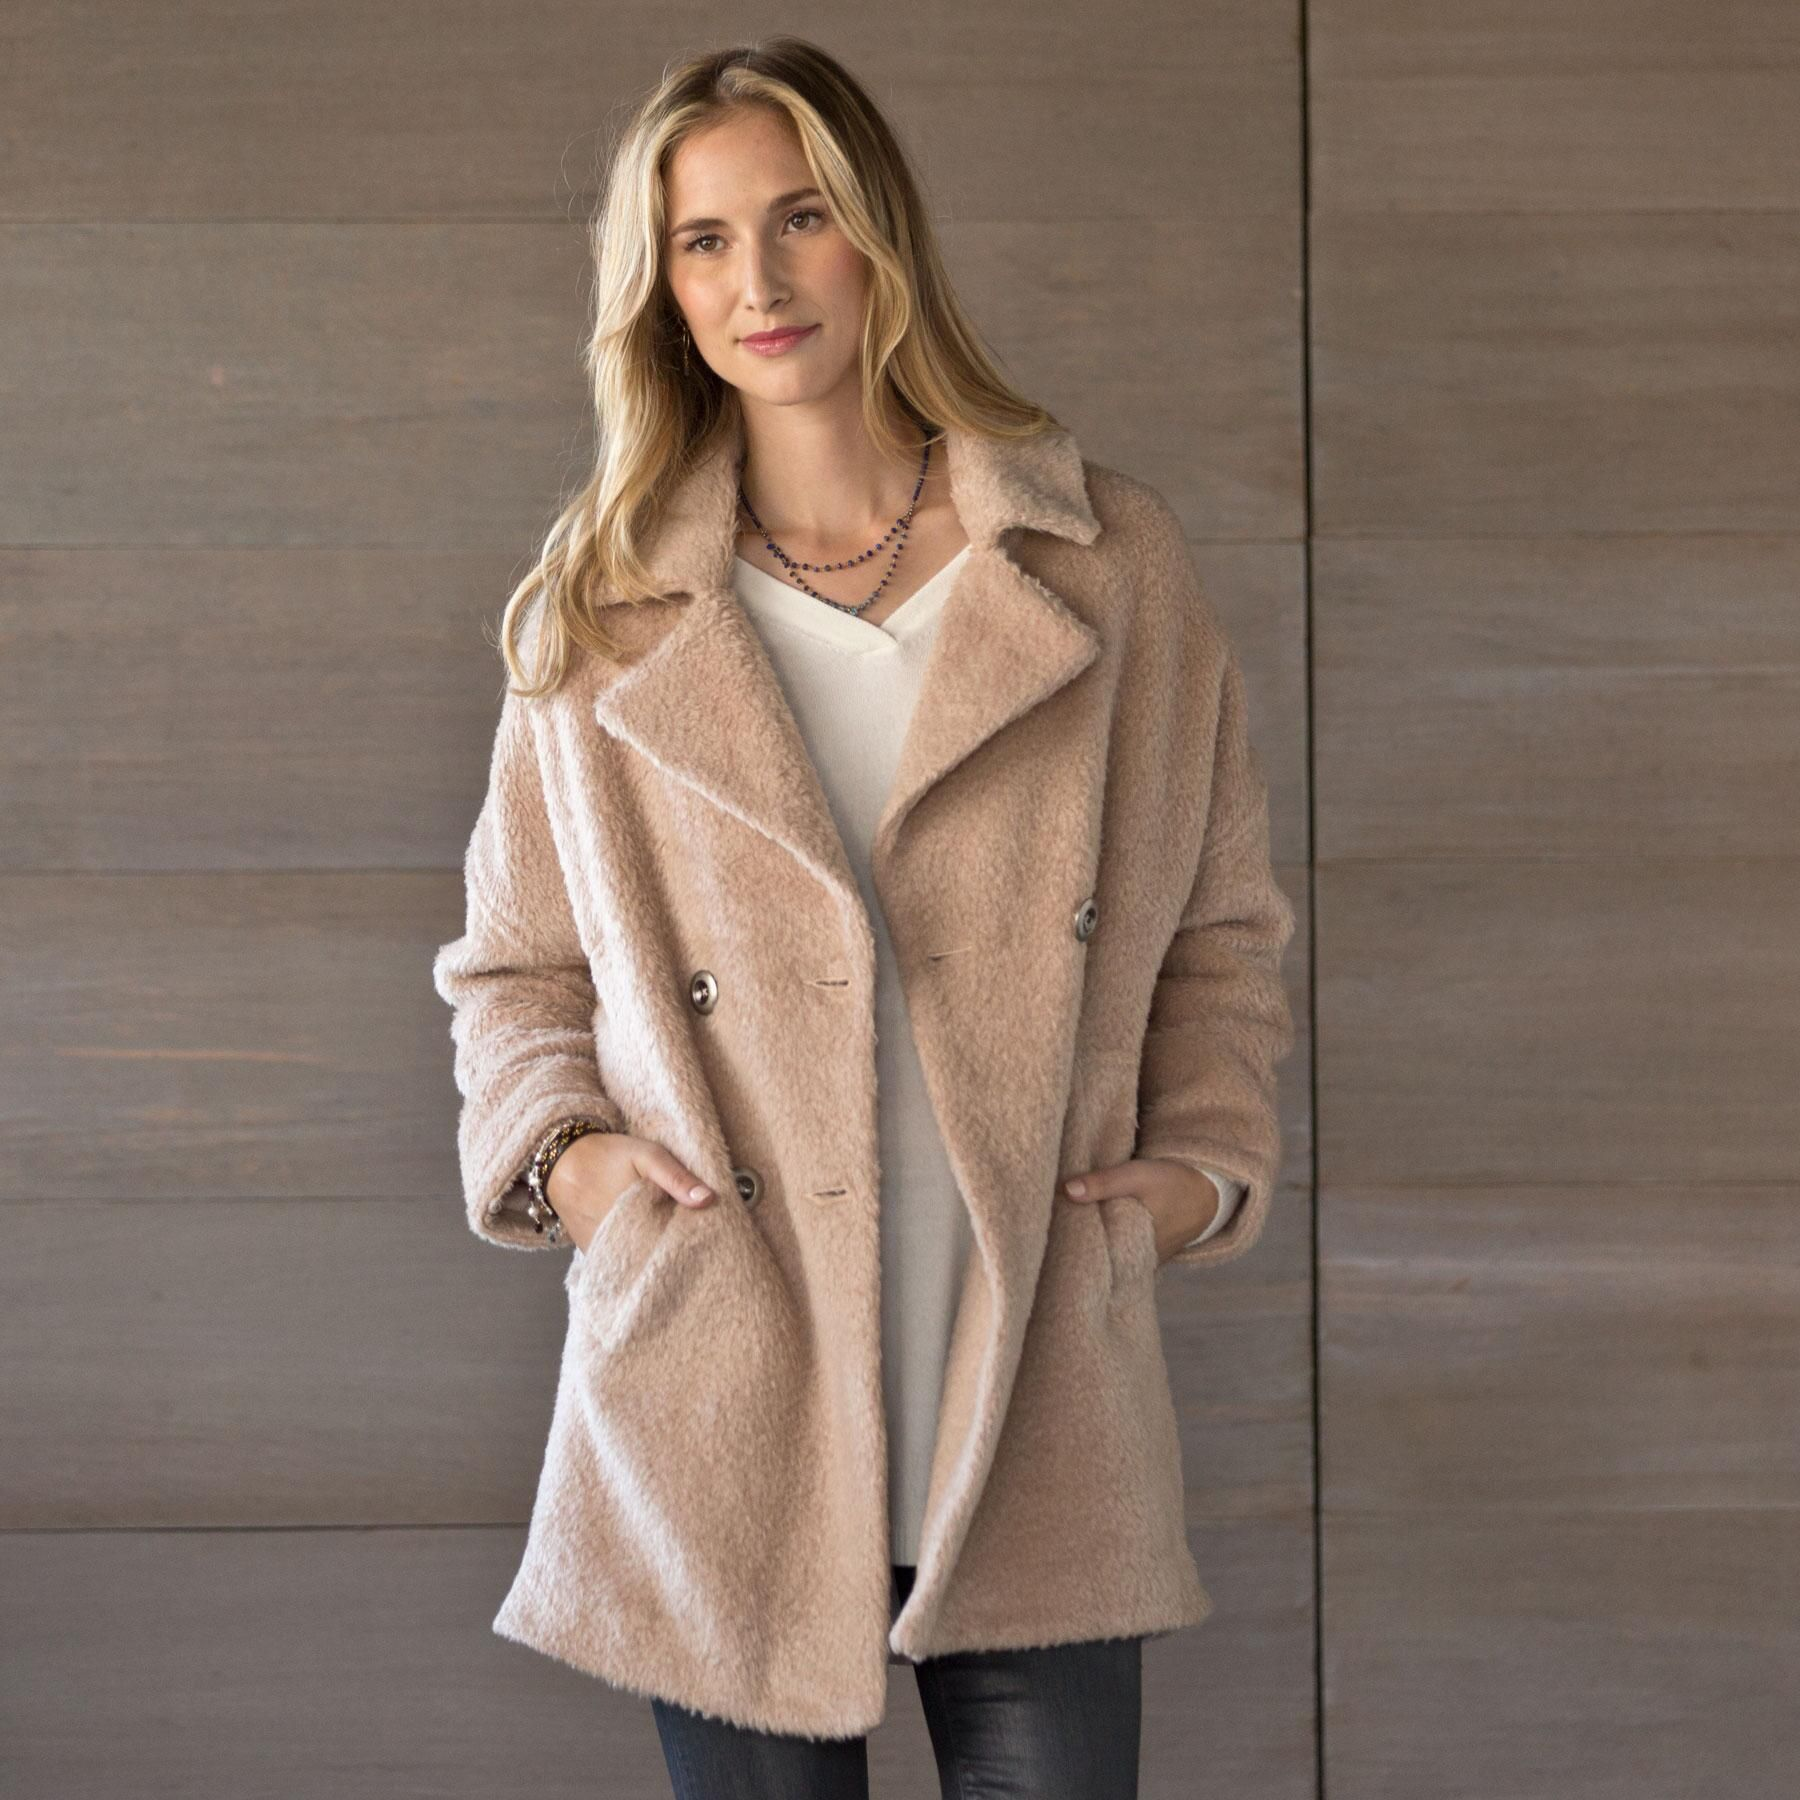 """QUINN OVERCOAT--A timeless, double-breasted overcoat with vintage appeal and the warmth and allure of lofty wool. Your new, go-to layer as temperatures drop. Fully lined. Wool/acrylic/nylon. Dry clean. Imported. Sizes S (4 to 6), M (8 to 10), L (12 to 14). Approx. 35""""L."""